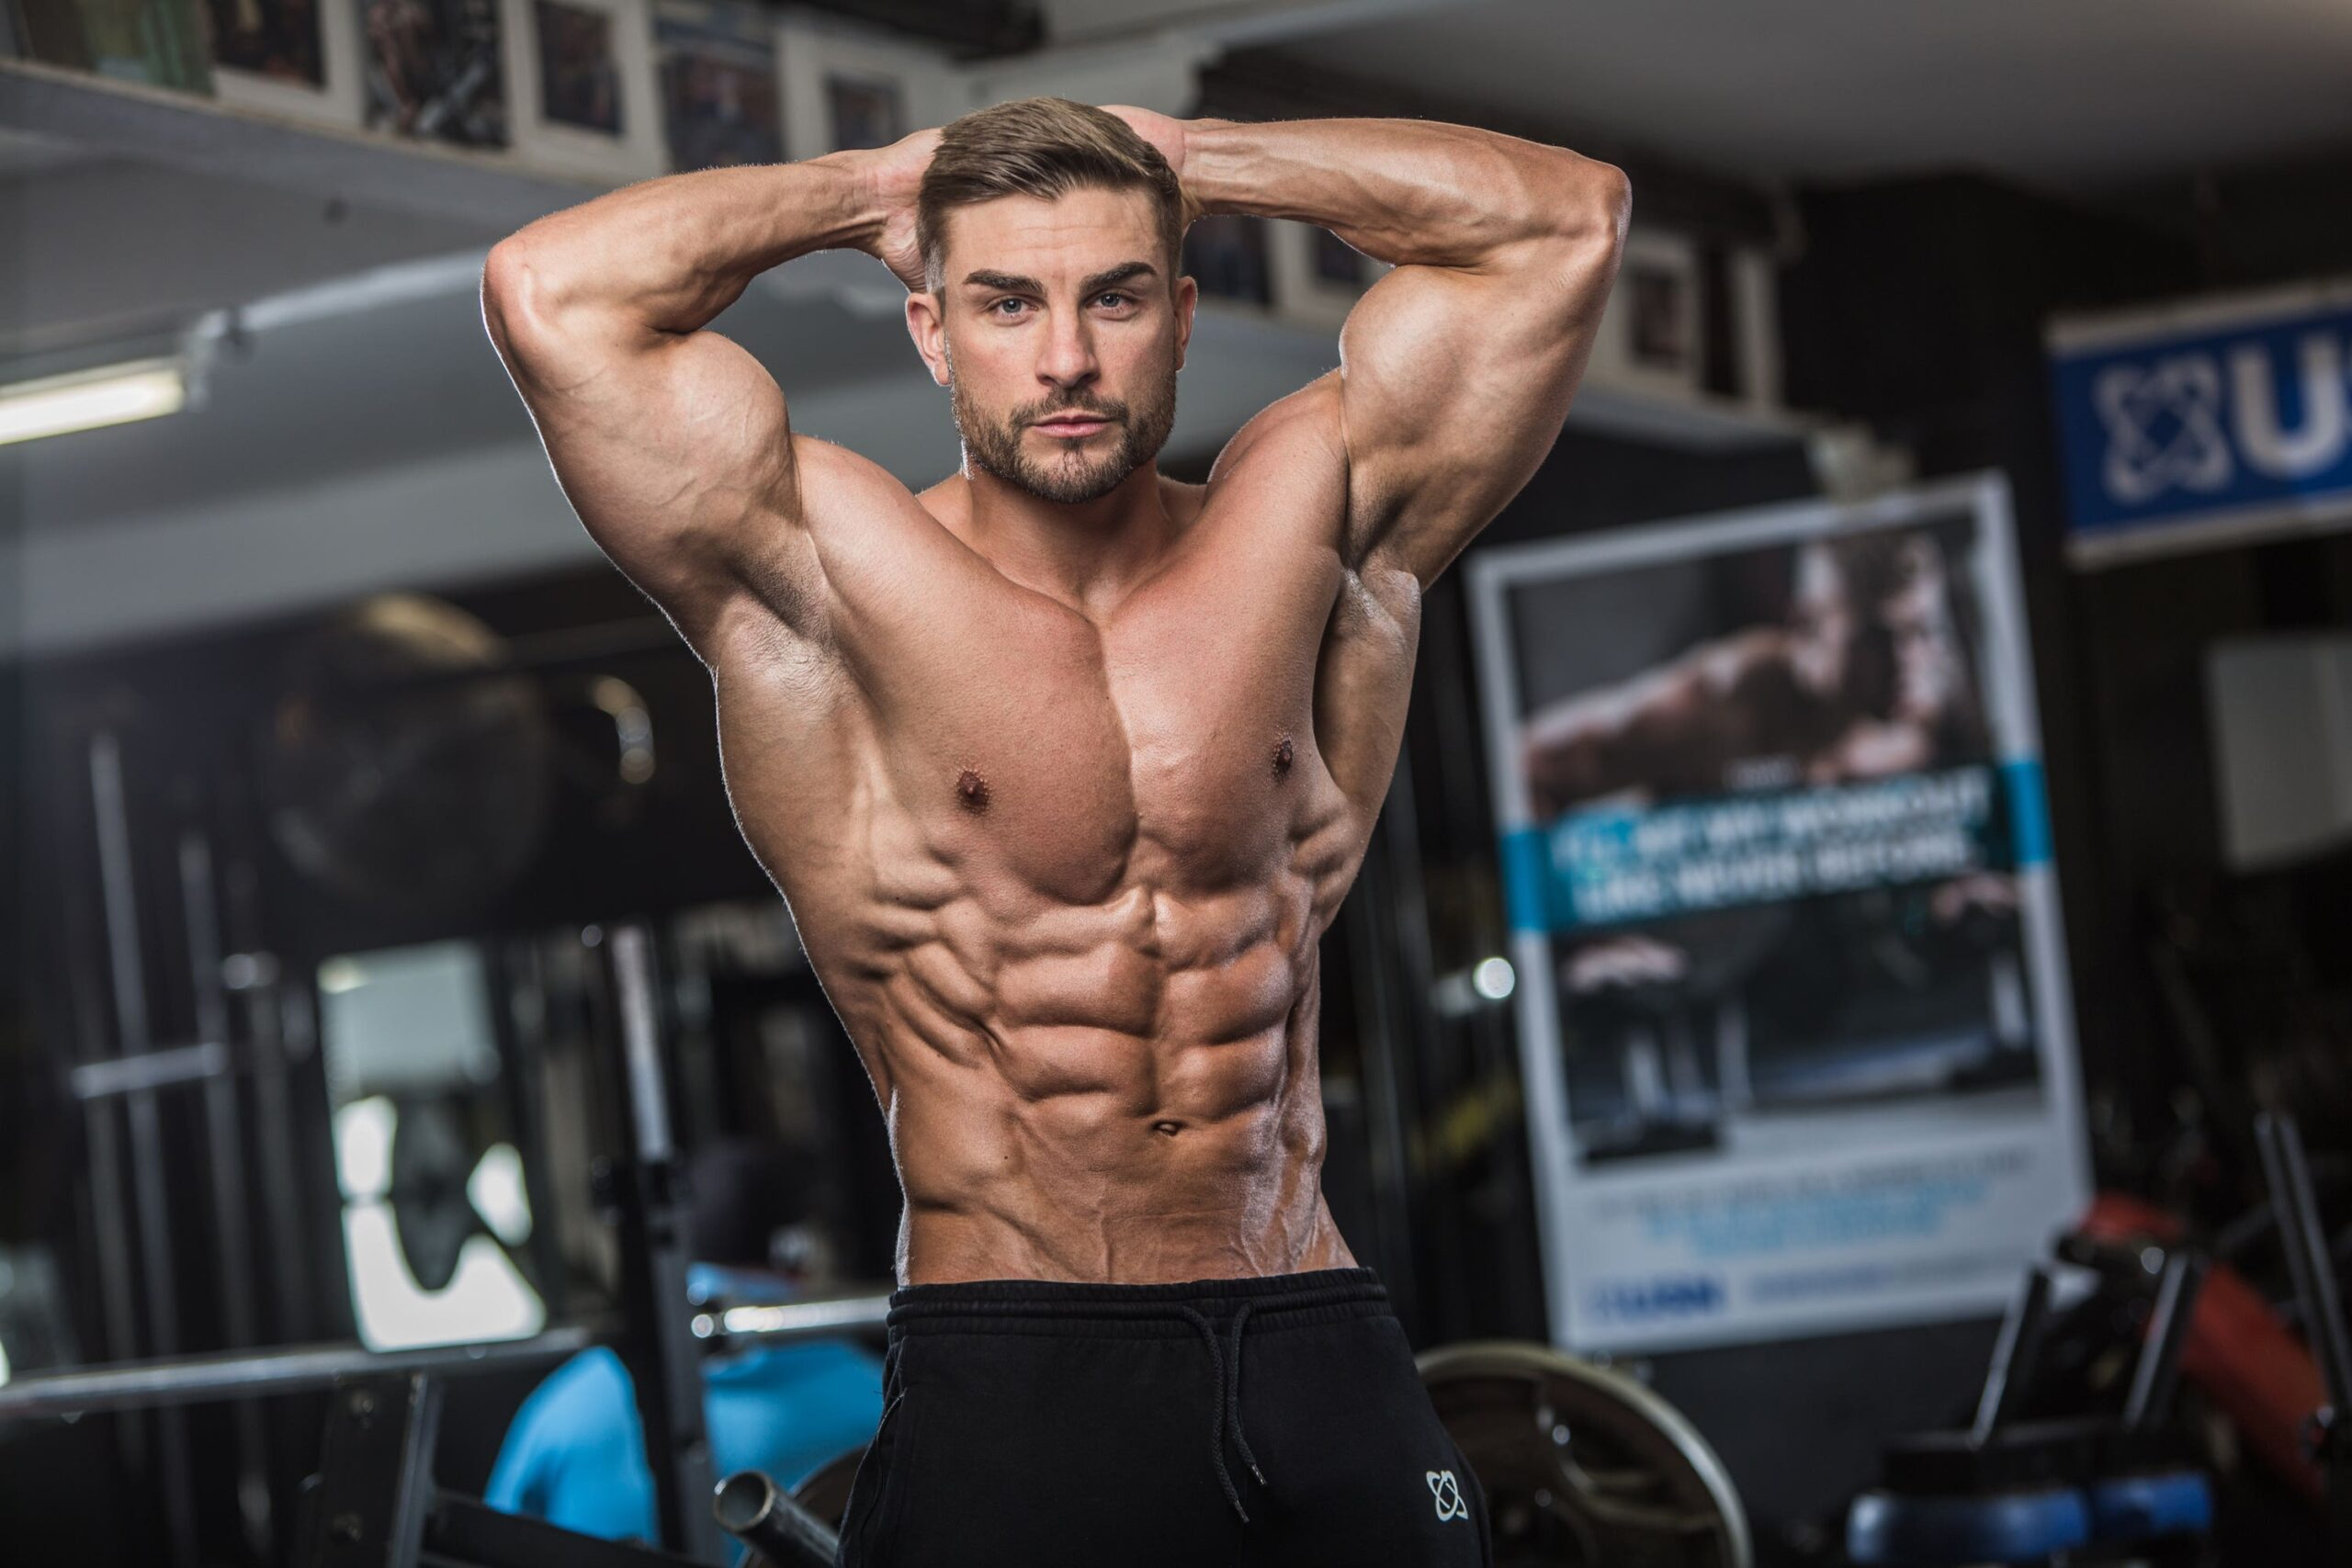 How long does it take to become a bodybuilder